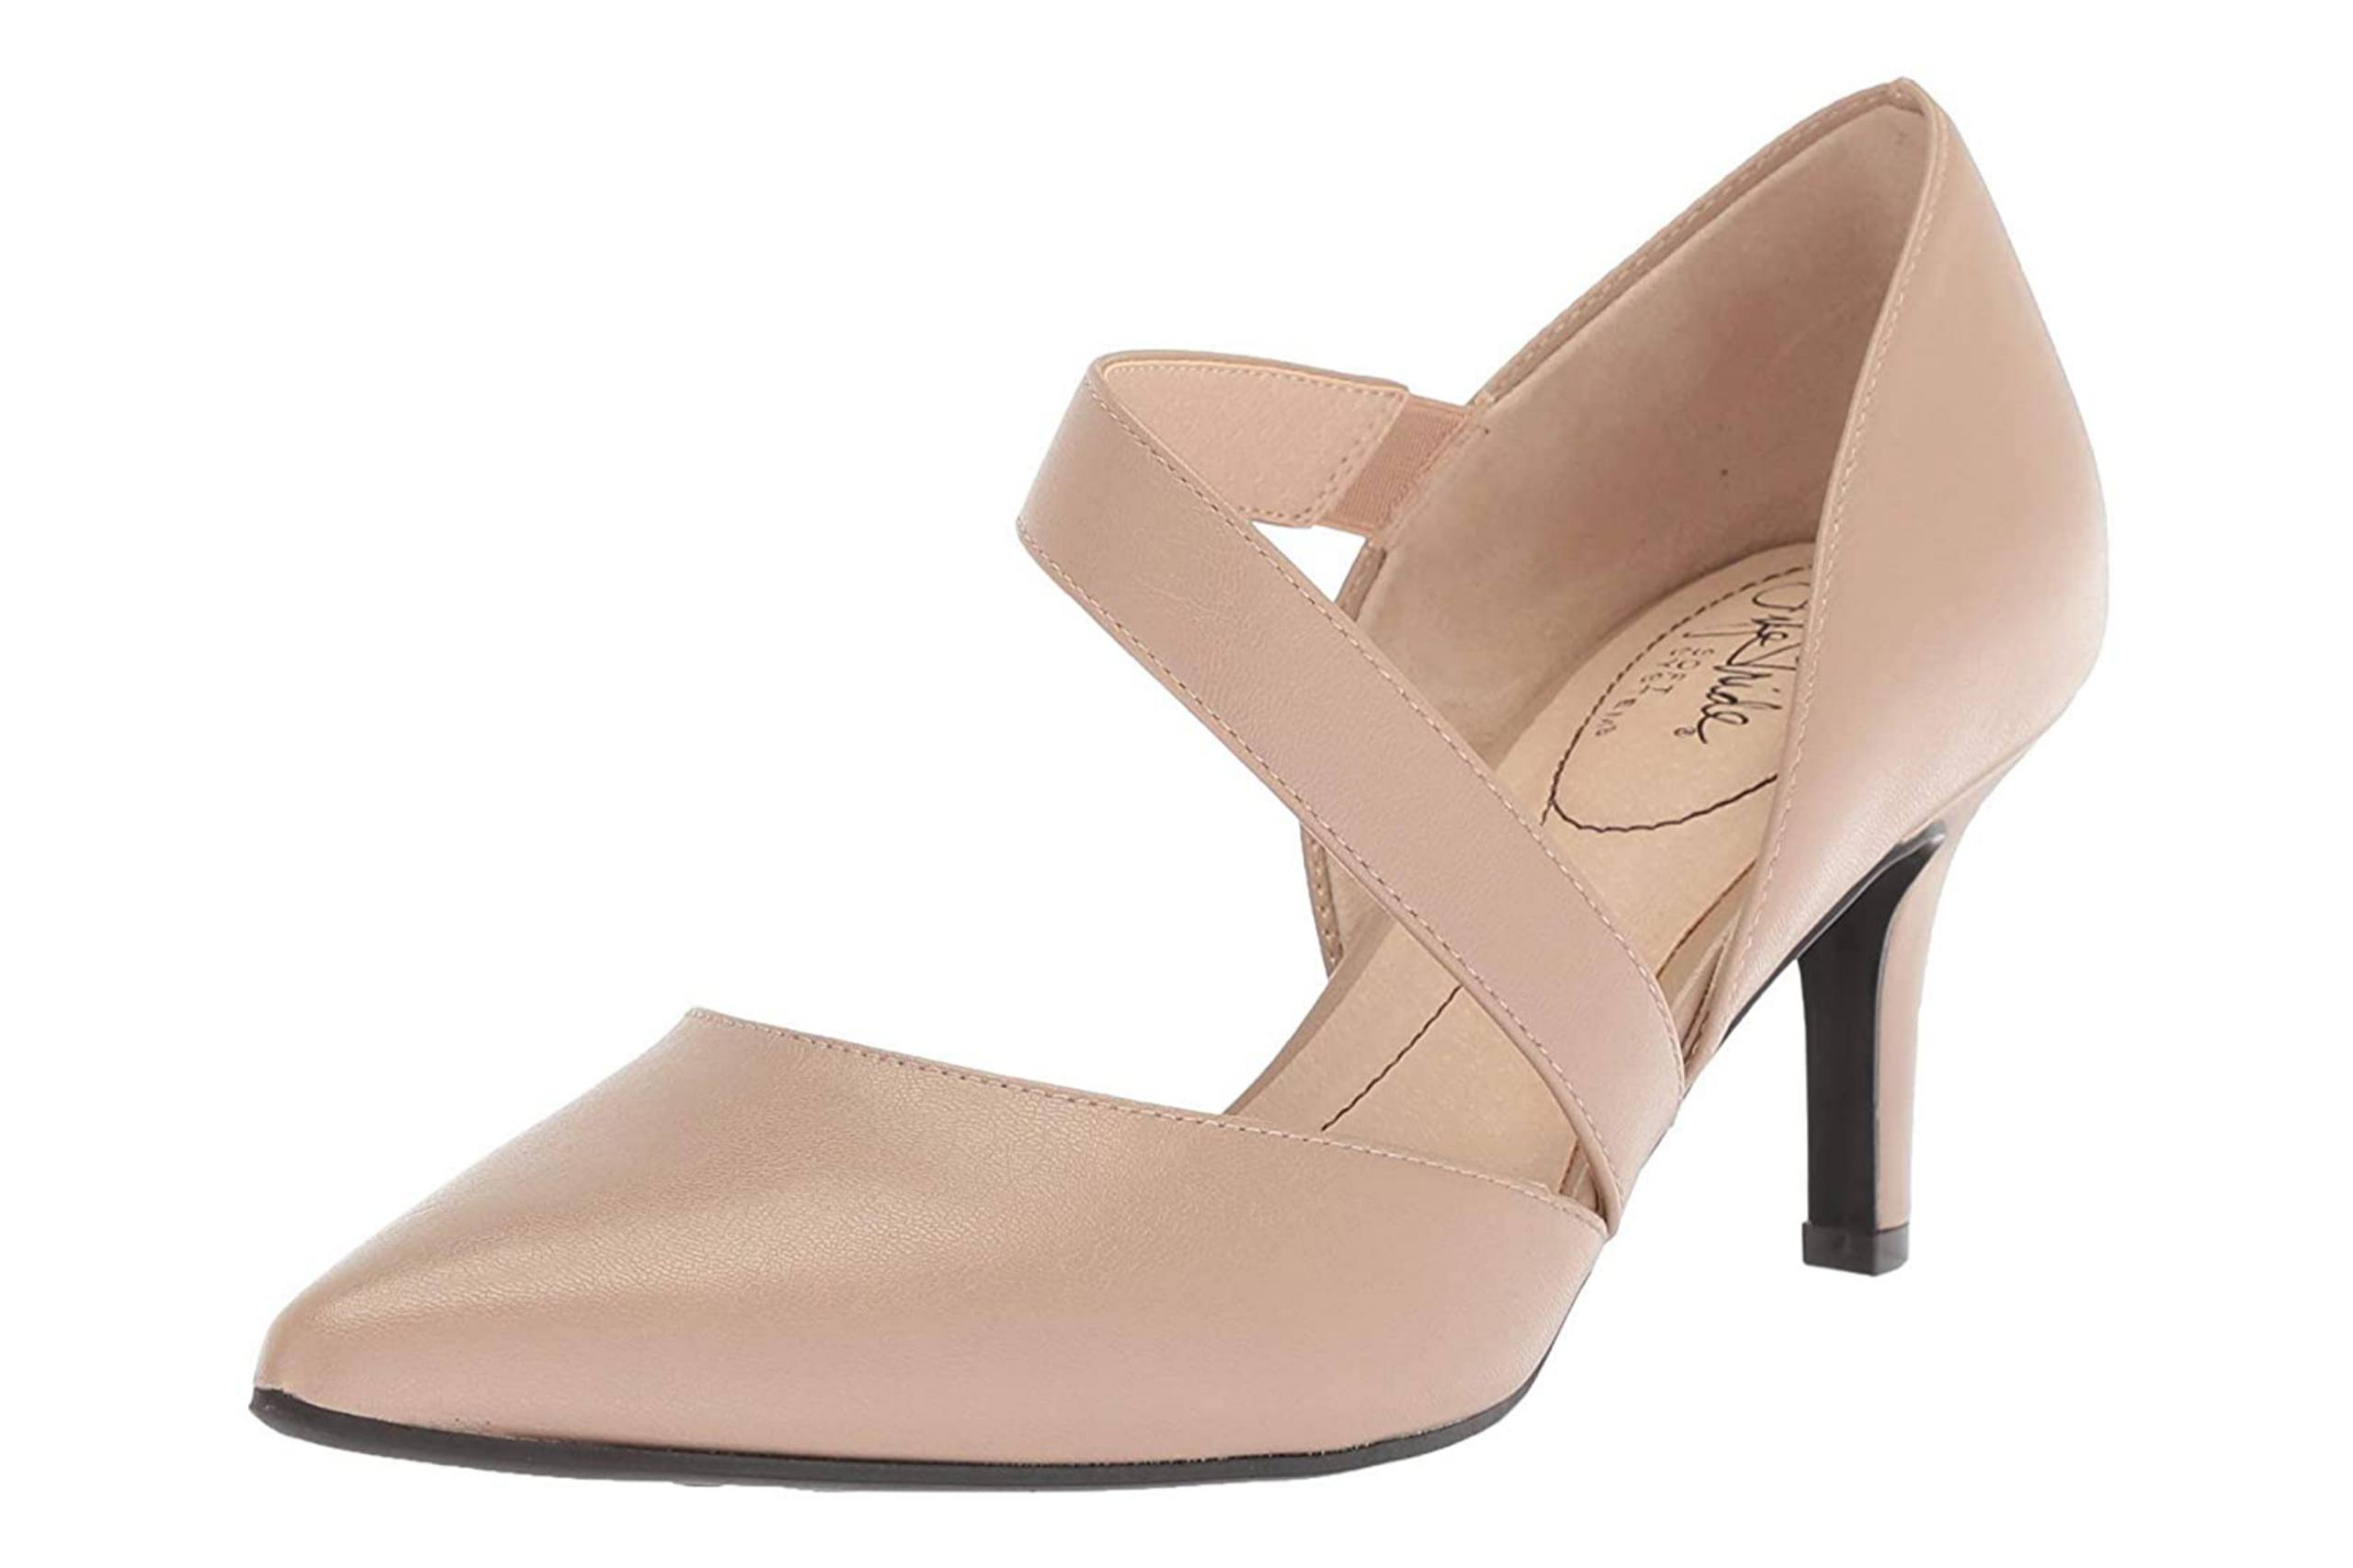 Low Heel Wedding shoe with closed toe